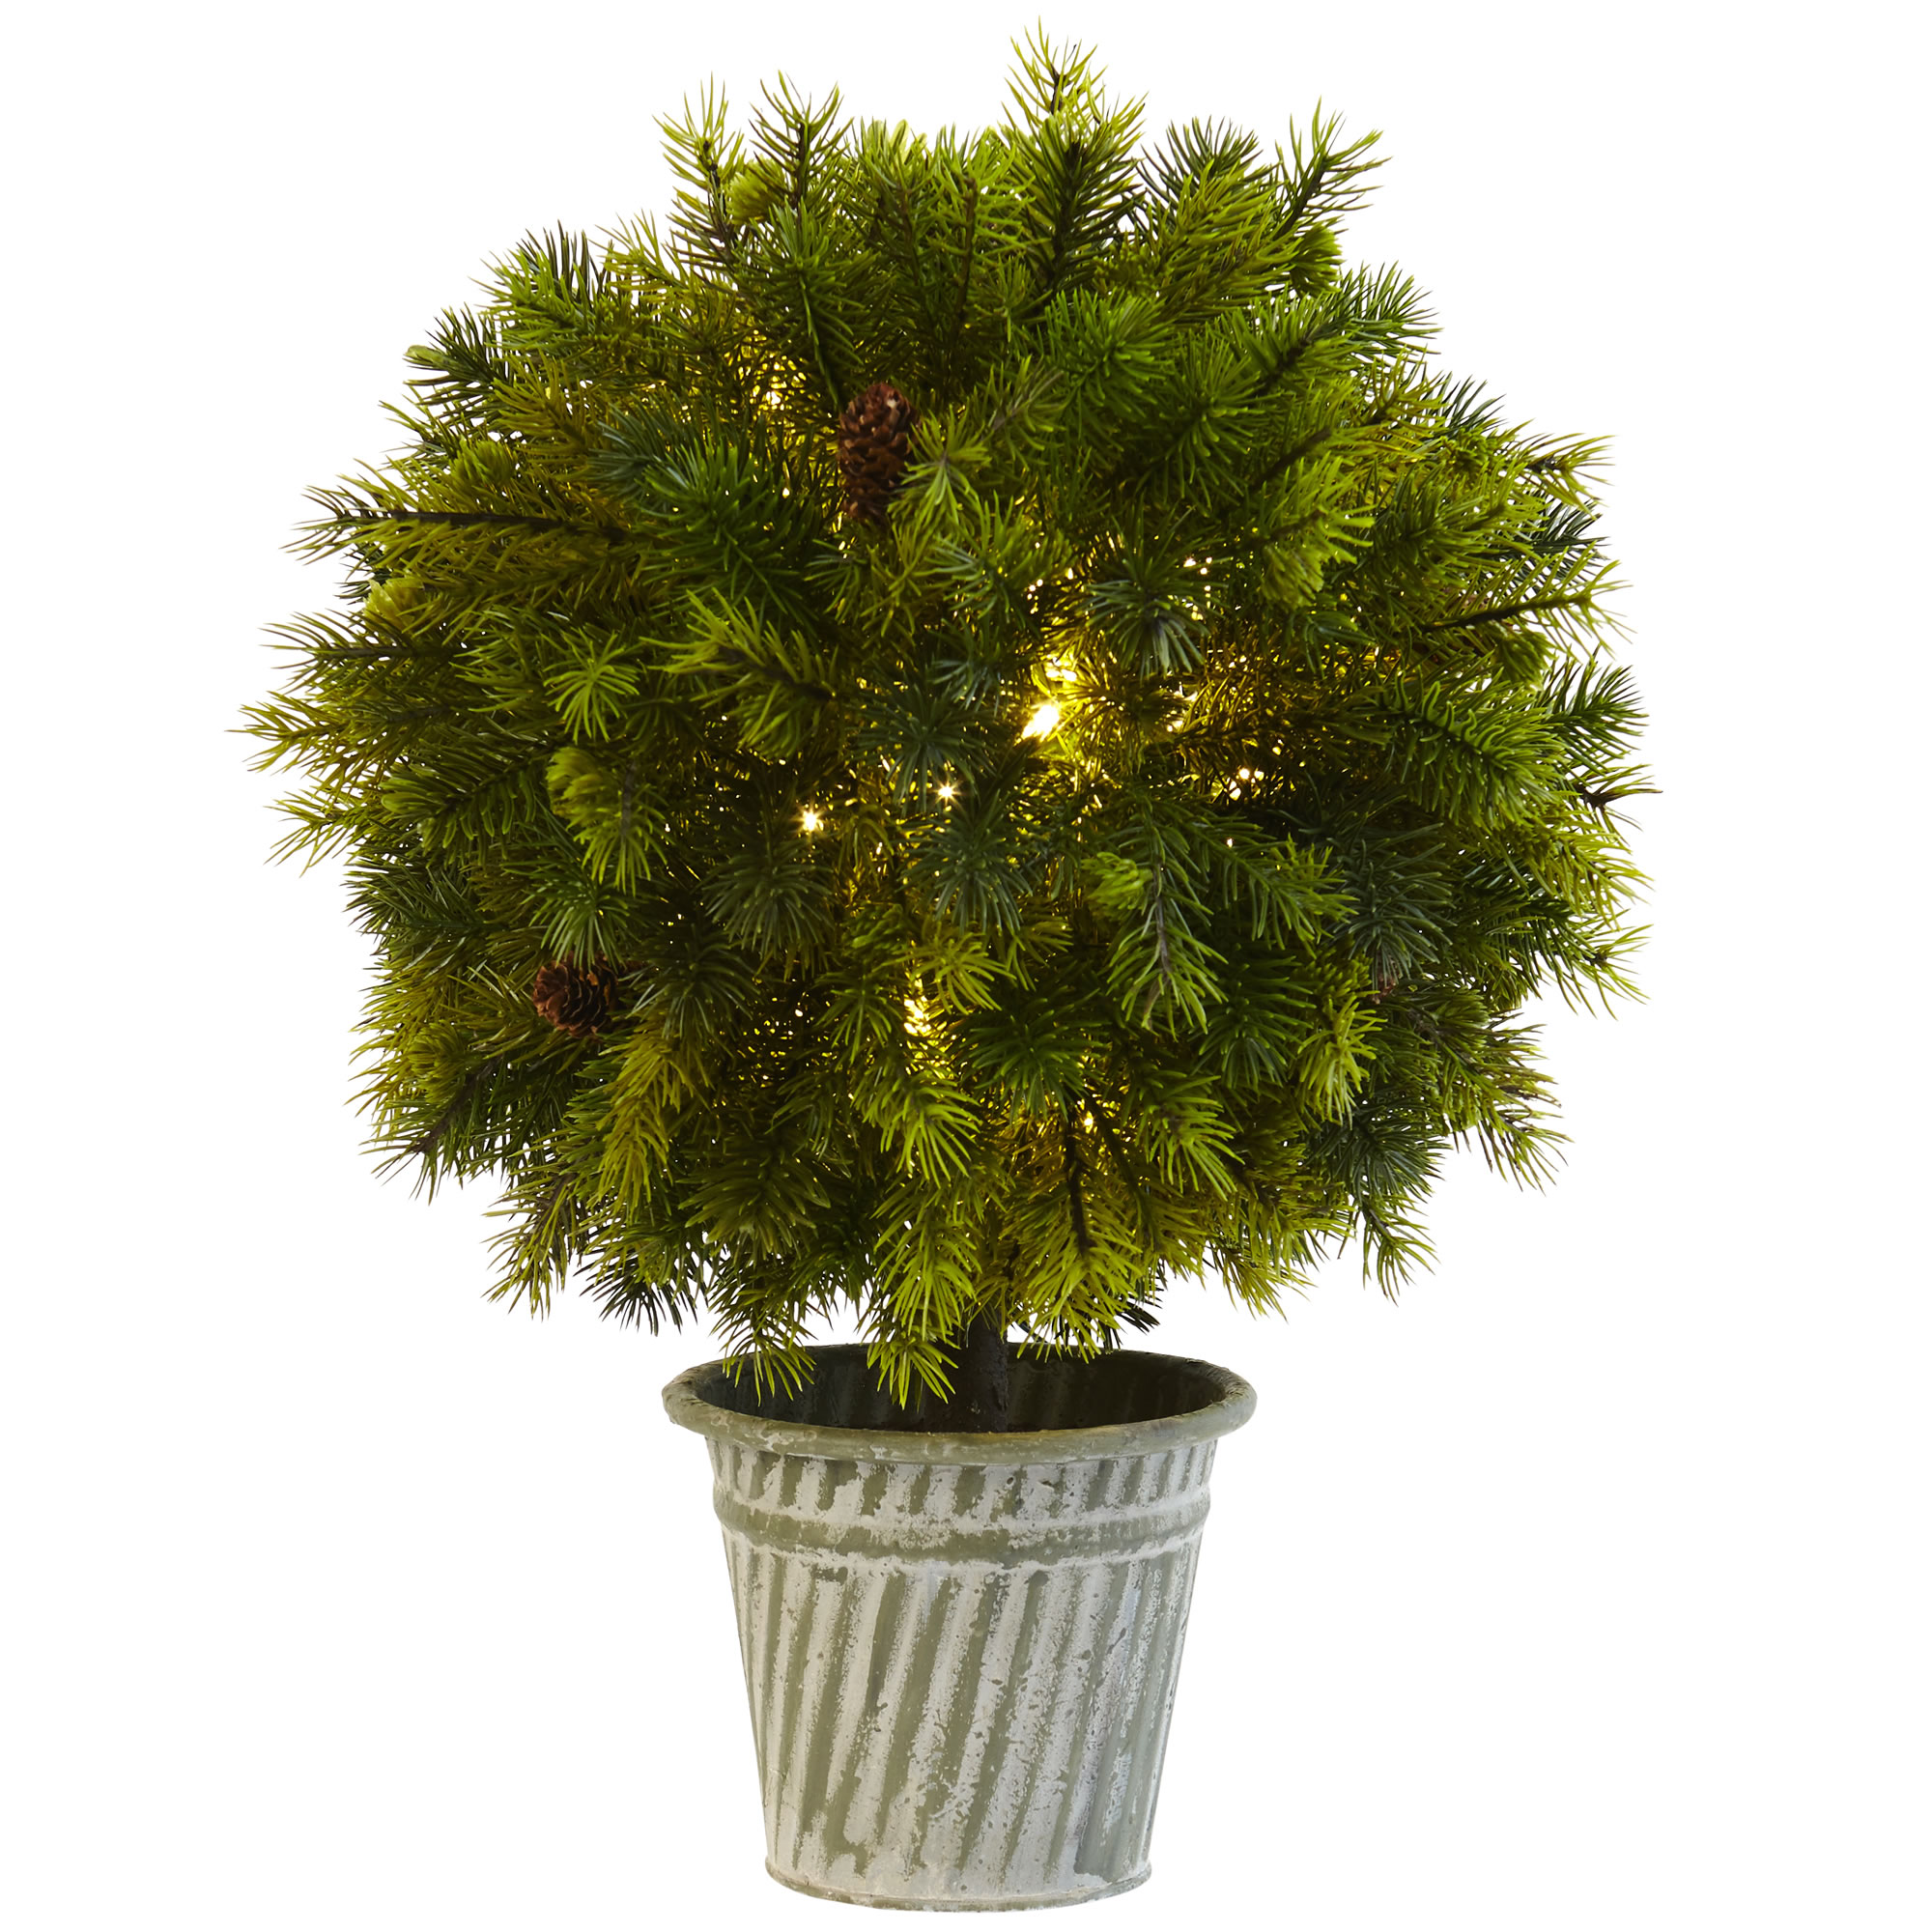 18 Quot Battery Operated Pine Ball Shaped Led Lighted